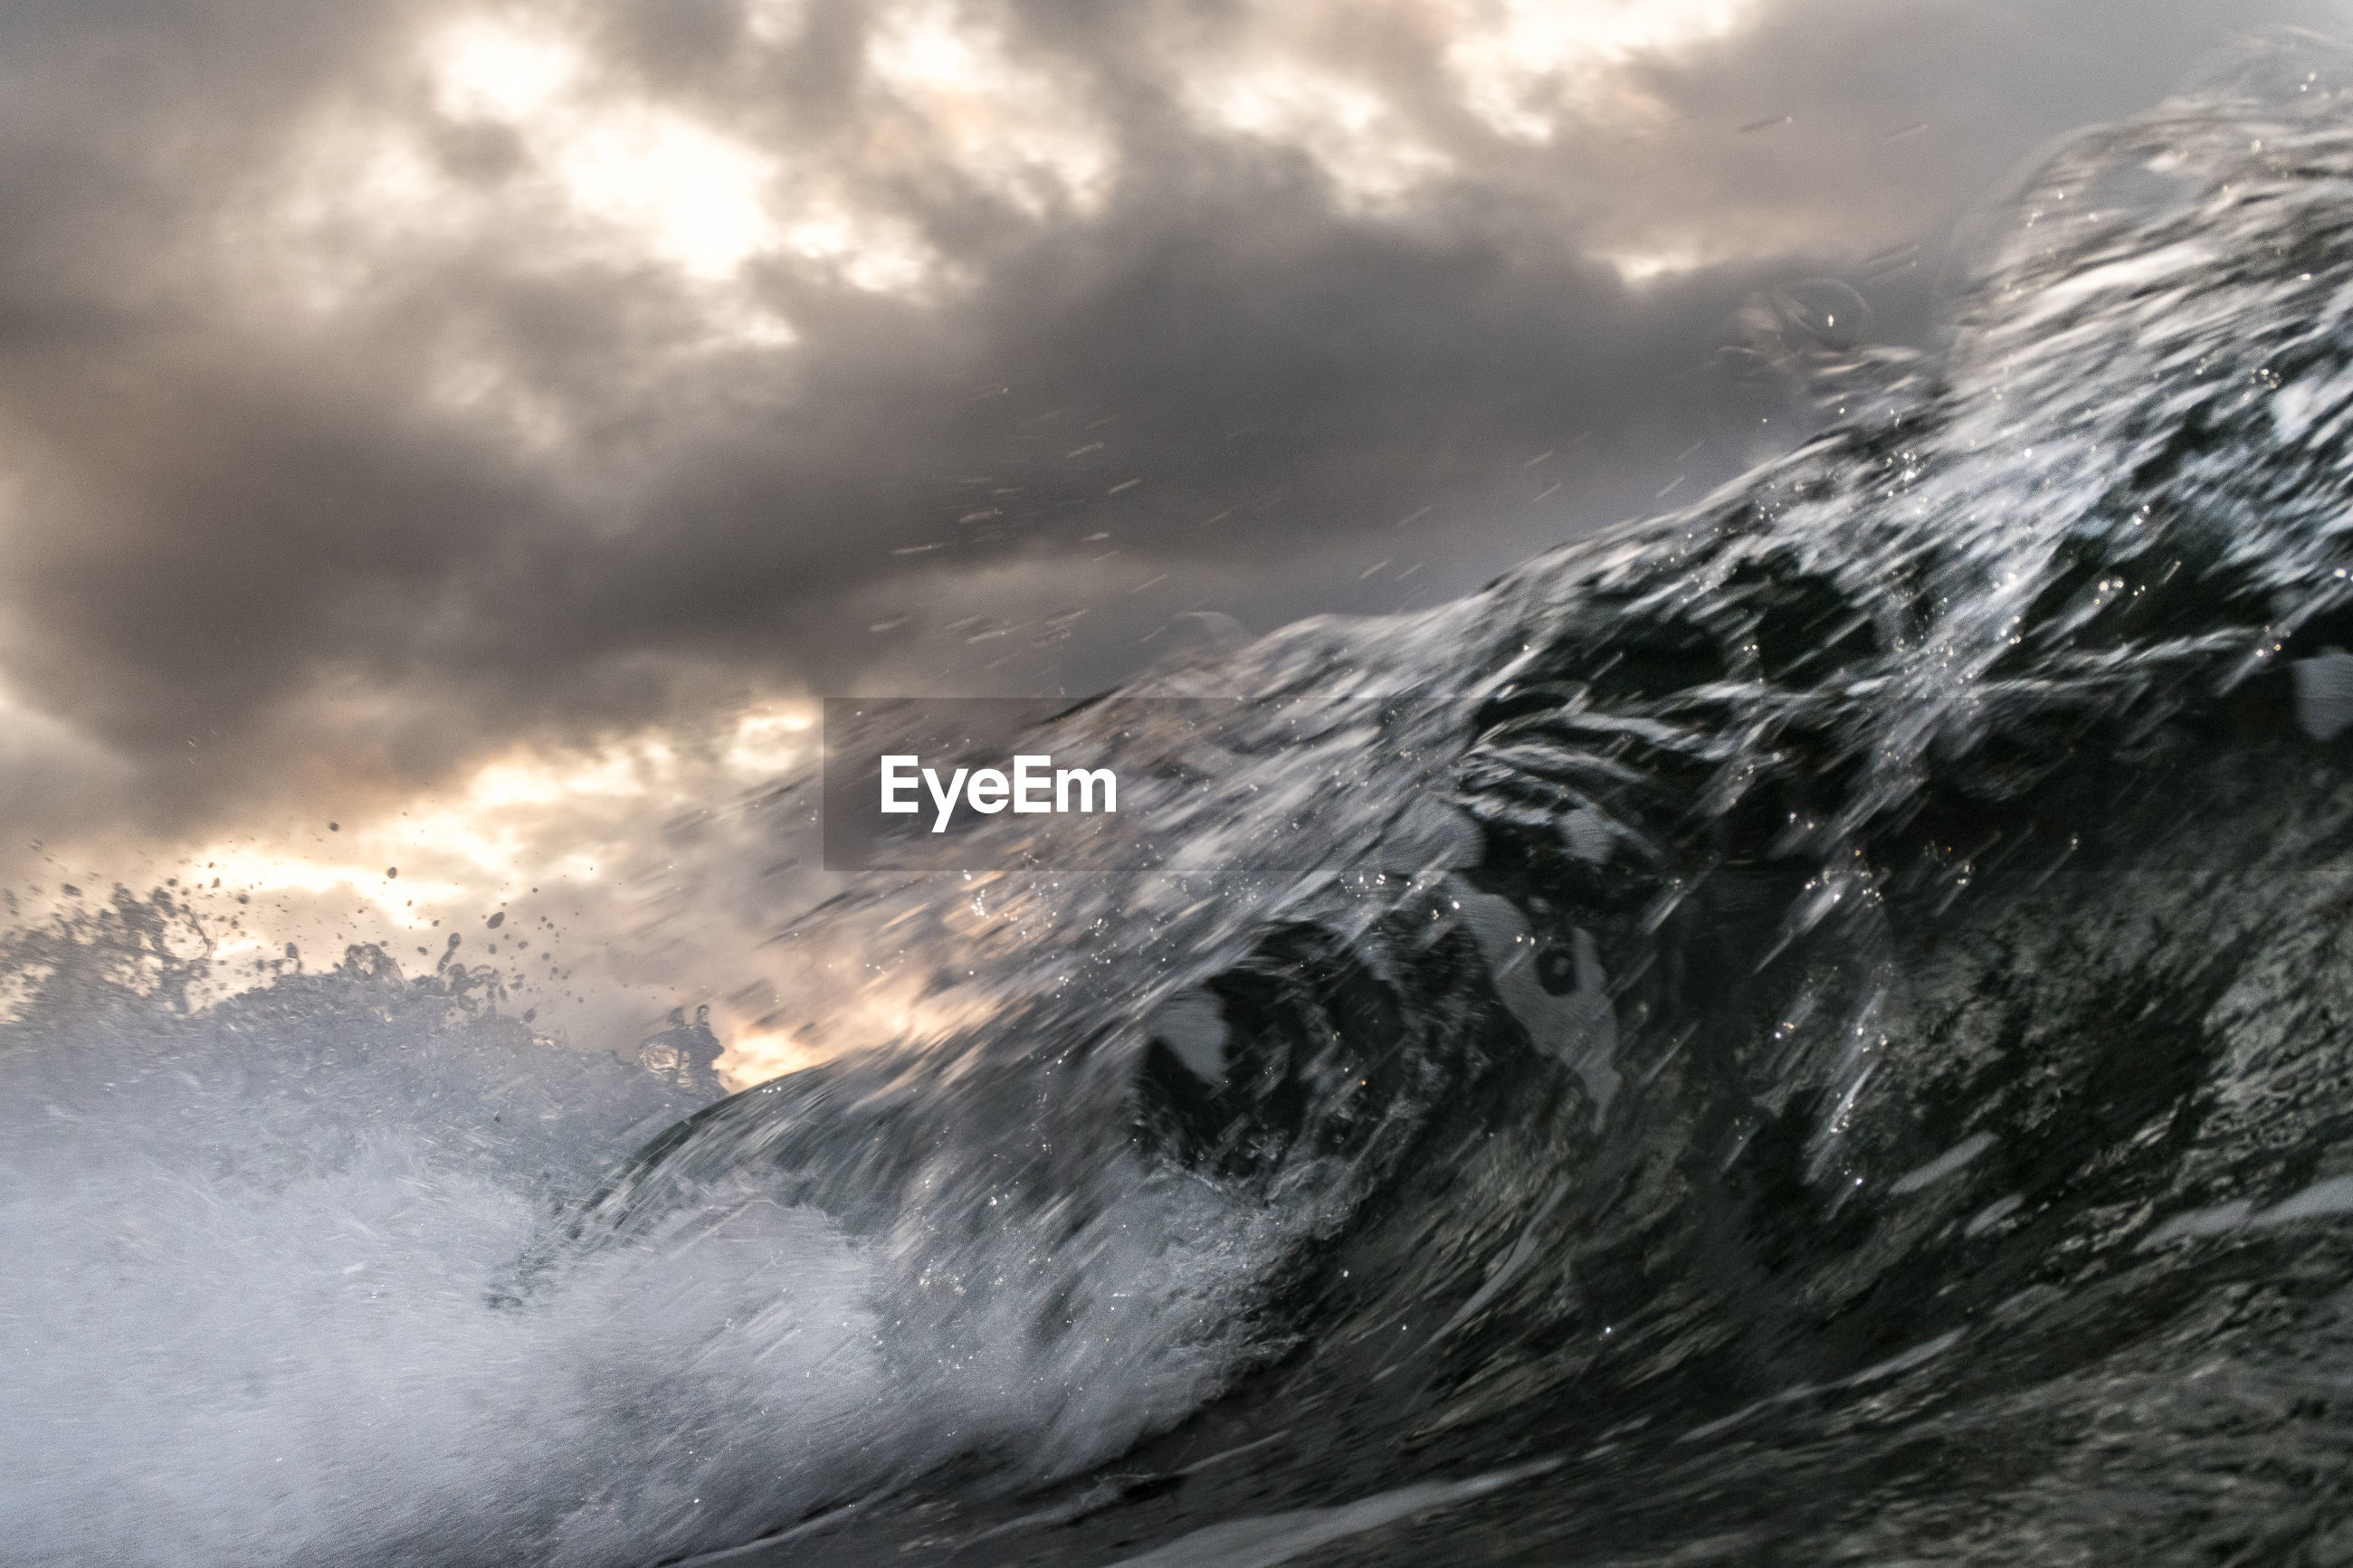 CLOSE-UP OF WAVE ON SEA AGAINST SKY